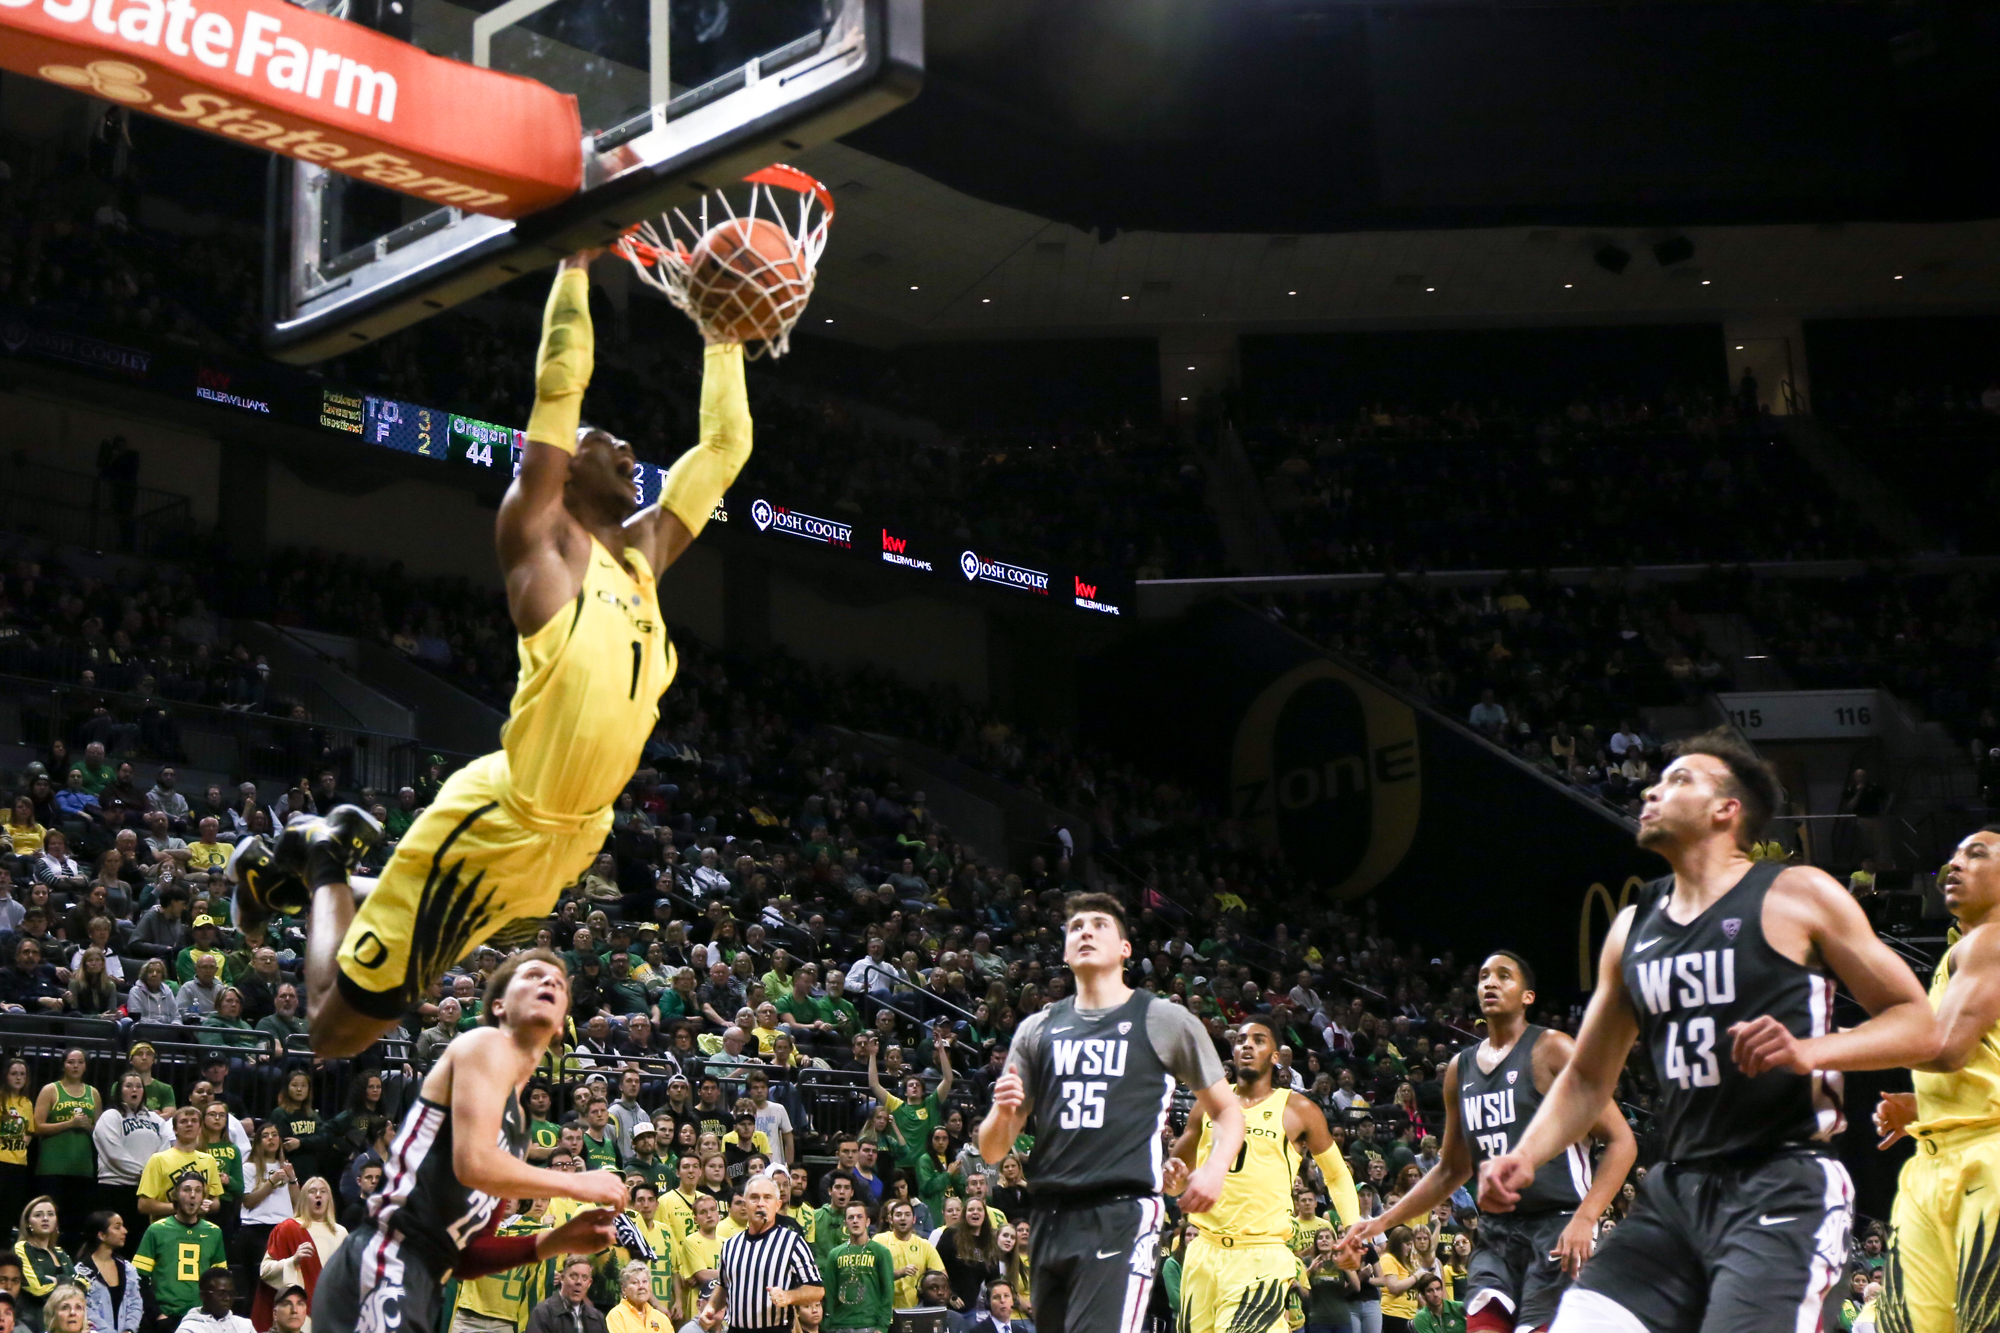 Oregon forward Kenny Wooten dunks the ball. Oregon basketball take on the Washington State Cougars at Matthew Knight Arena in Eugene, Ore. on Feb. 11, 2018. (Natalie Waitt-Gibson/Emerald)